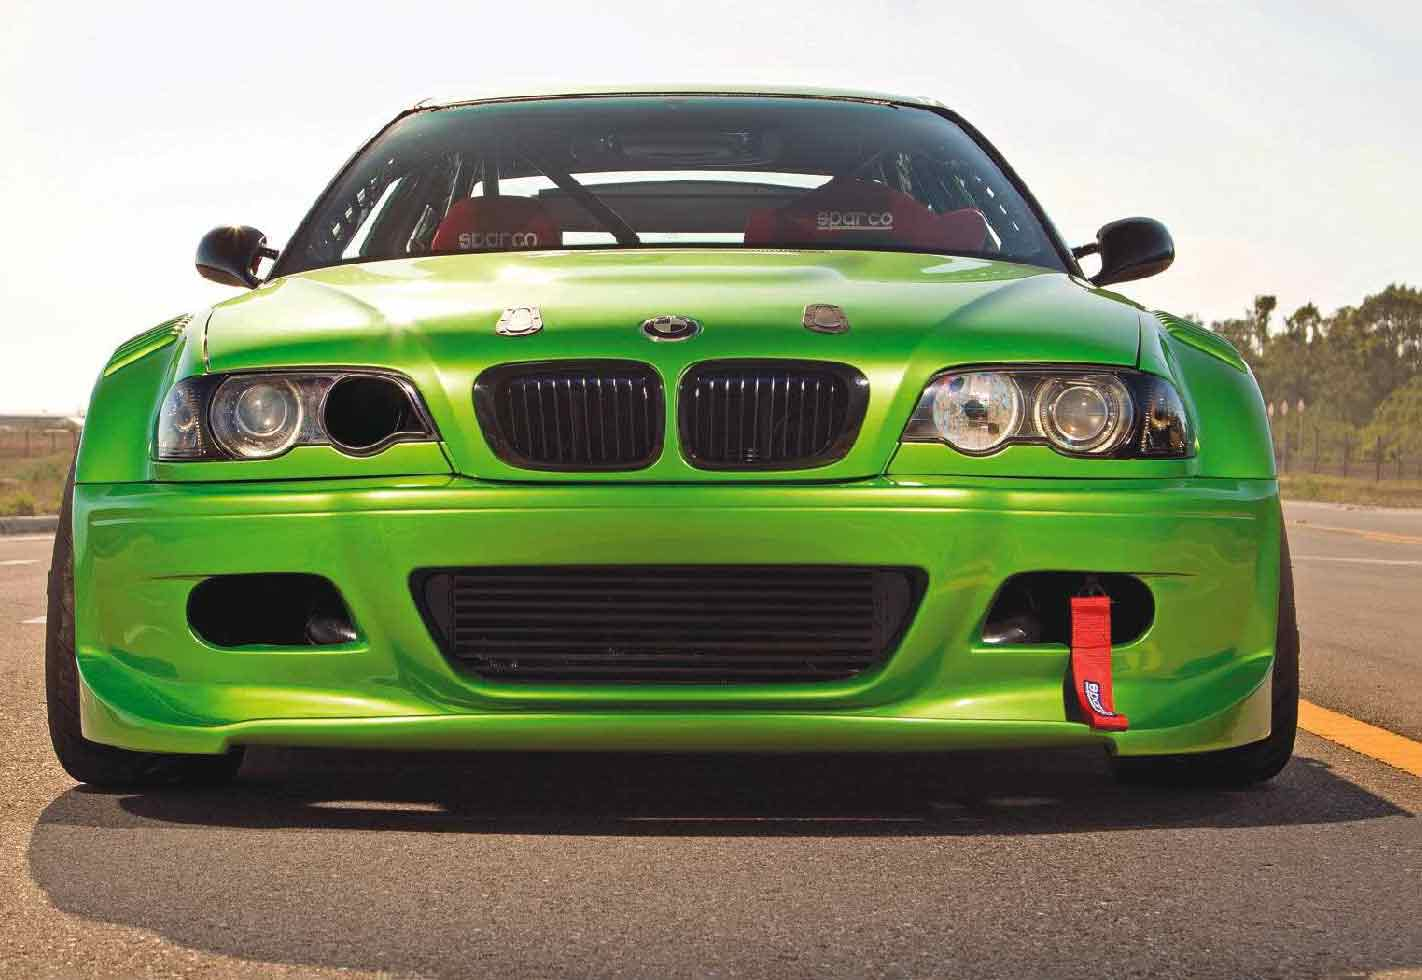 657hp 2JZ-engined BMW M3 E46 drift monster - Drive-My Blogs